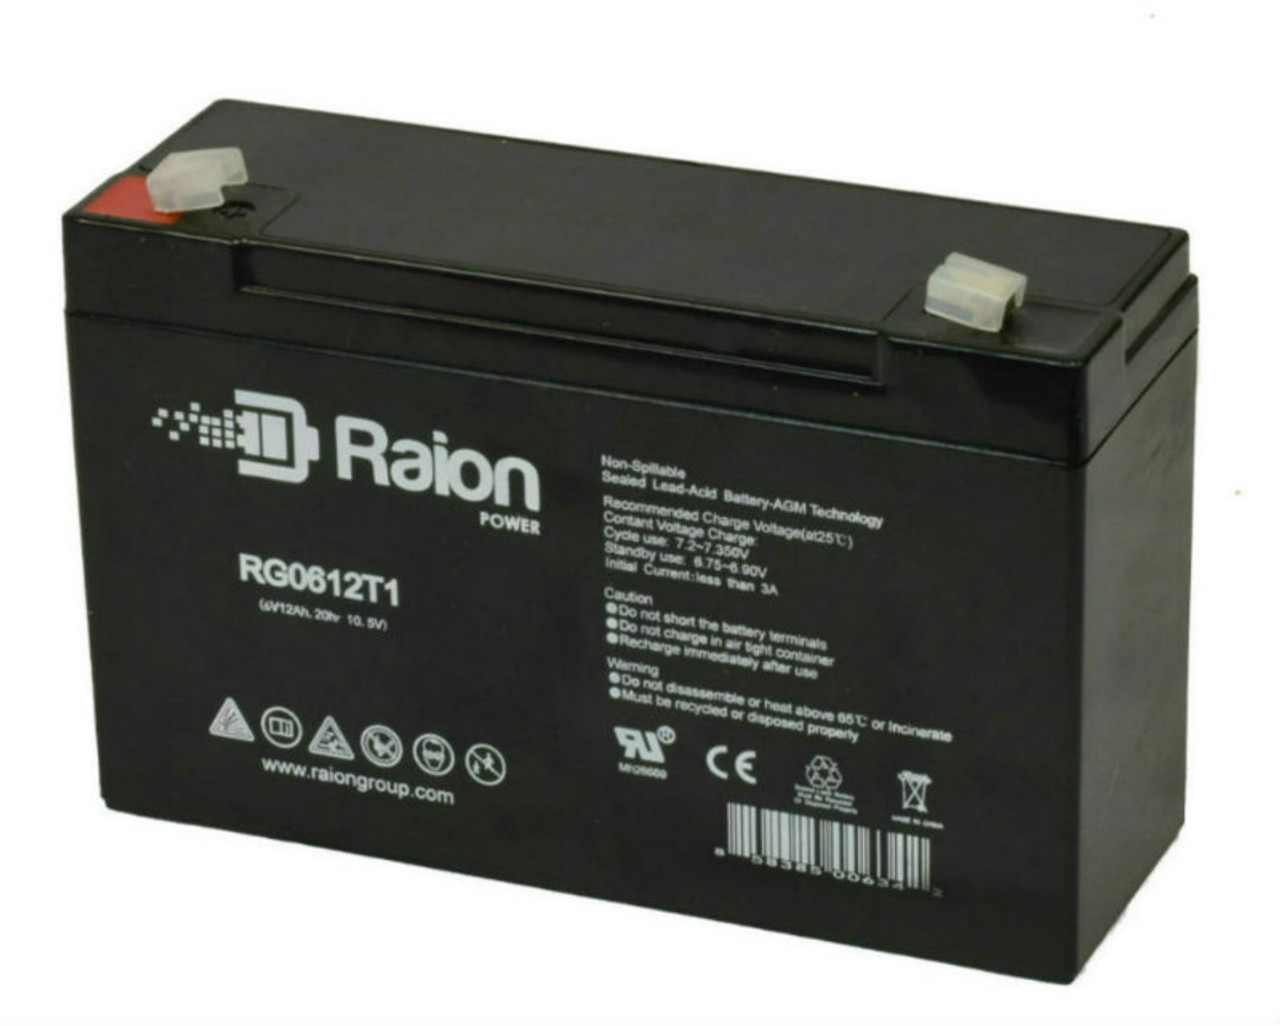 Raion Power RG06120T1 Replacement Battery Pack for Light Alarms F12G1 emergency light